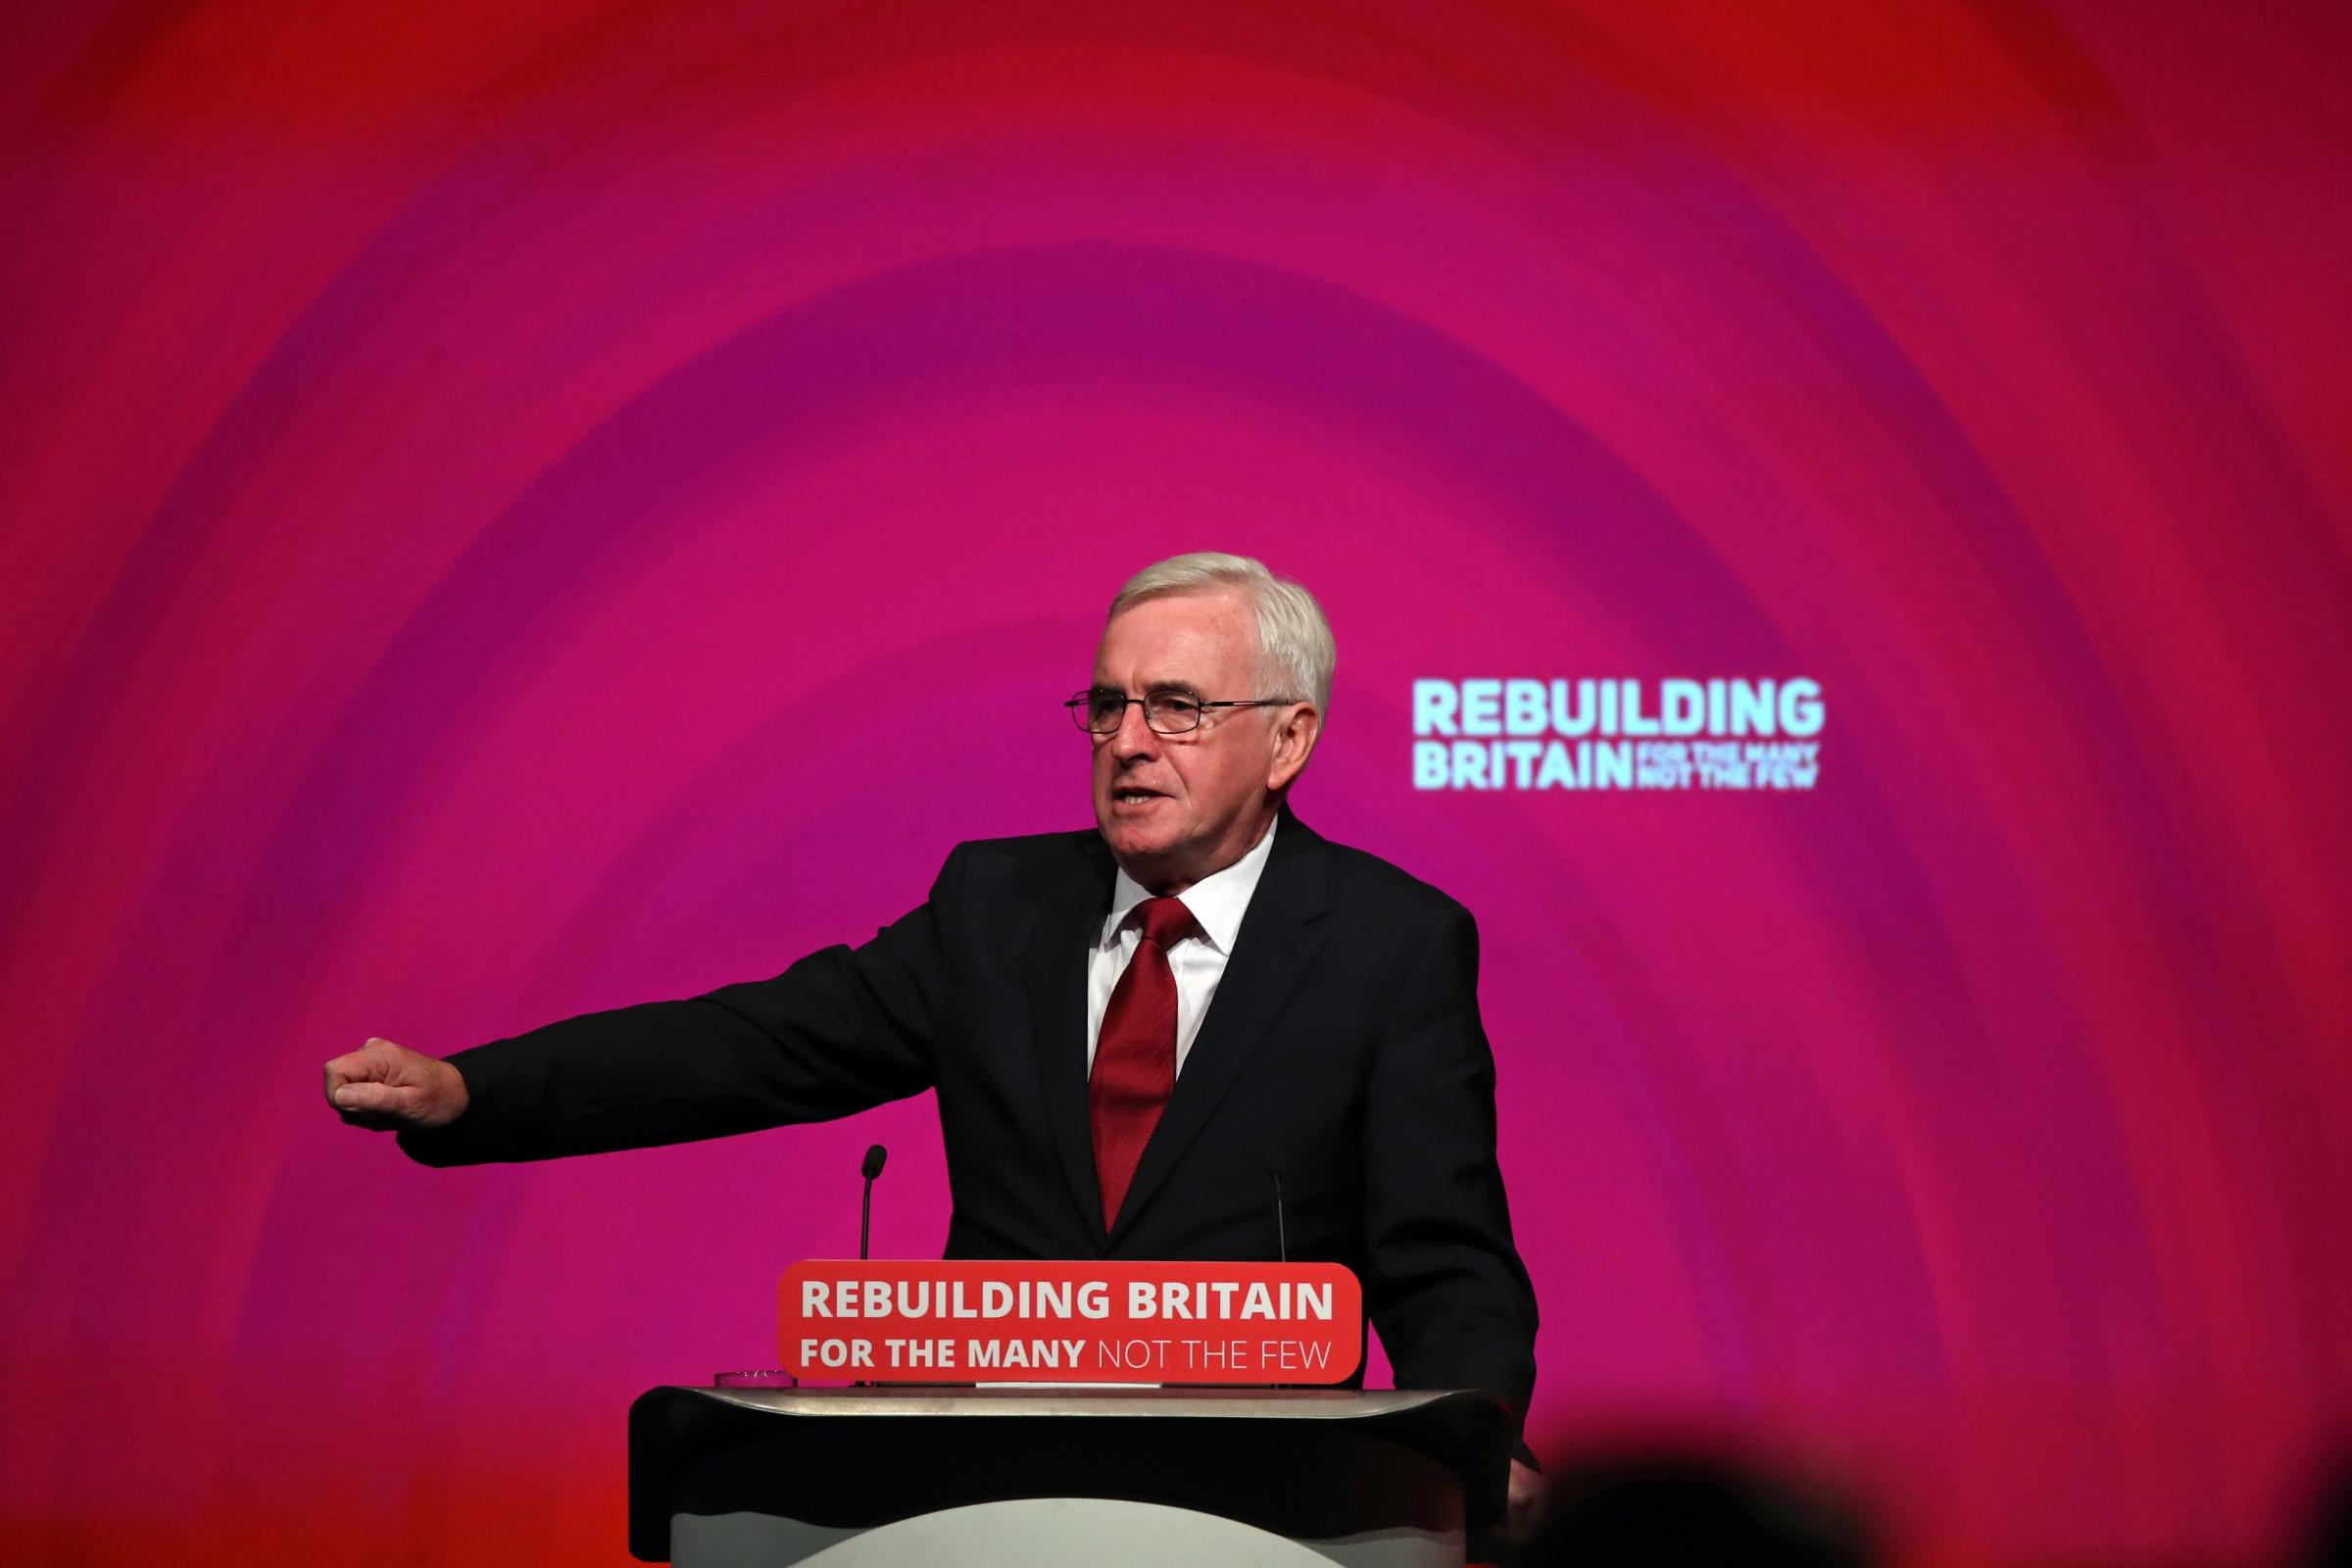 John McDonnell's 10% shares plan: There is no ethical capitalism